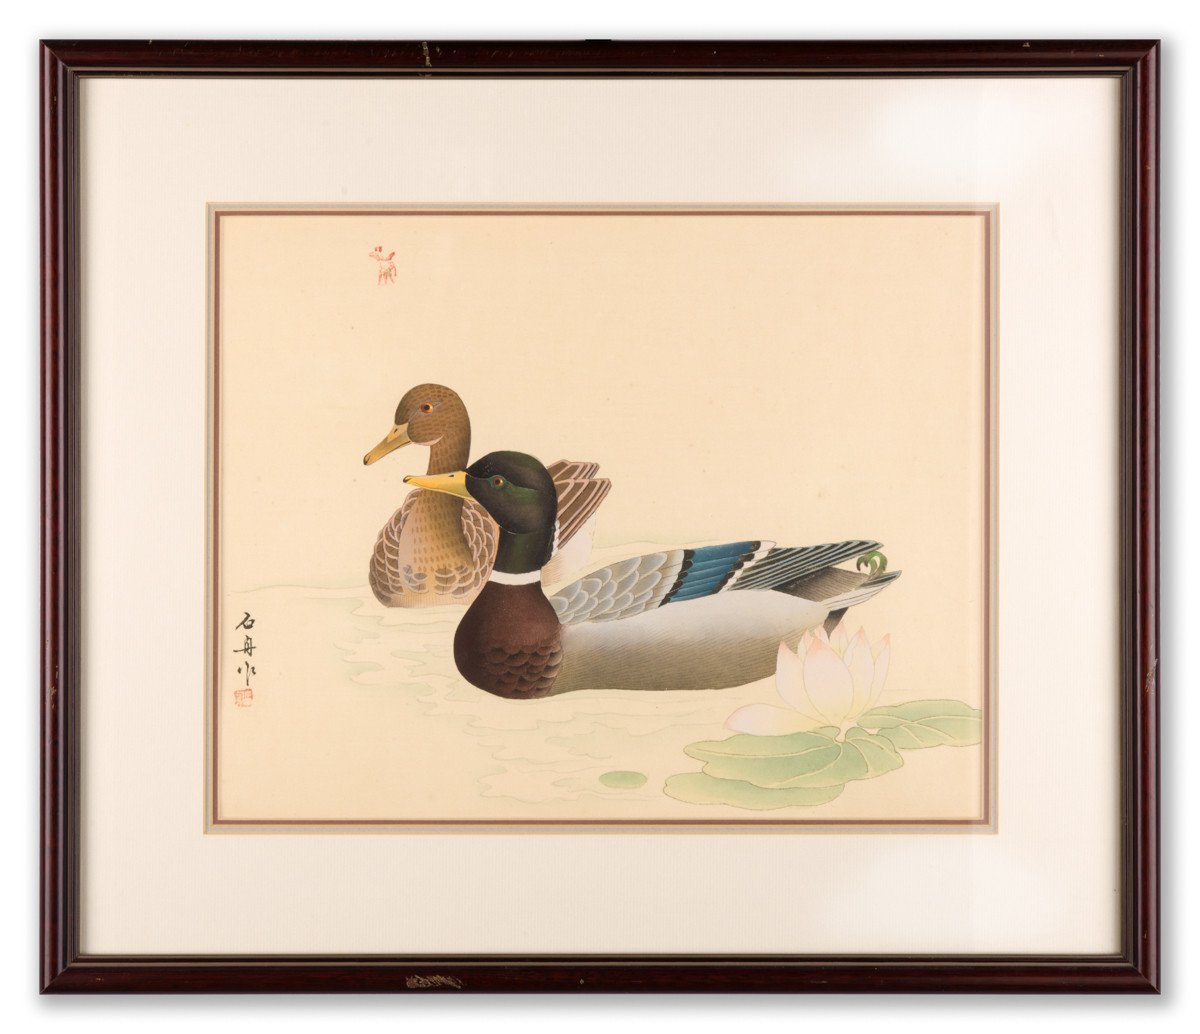 Mallards (Drake & Hen) - Fine Art Lithography - Framed Art